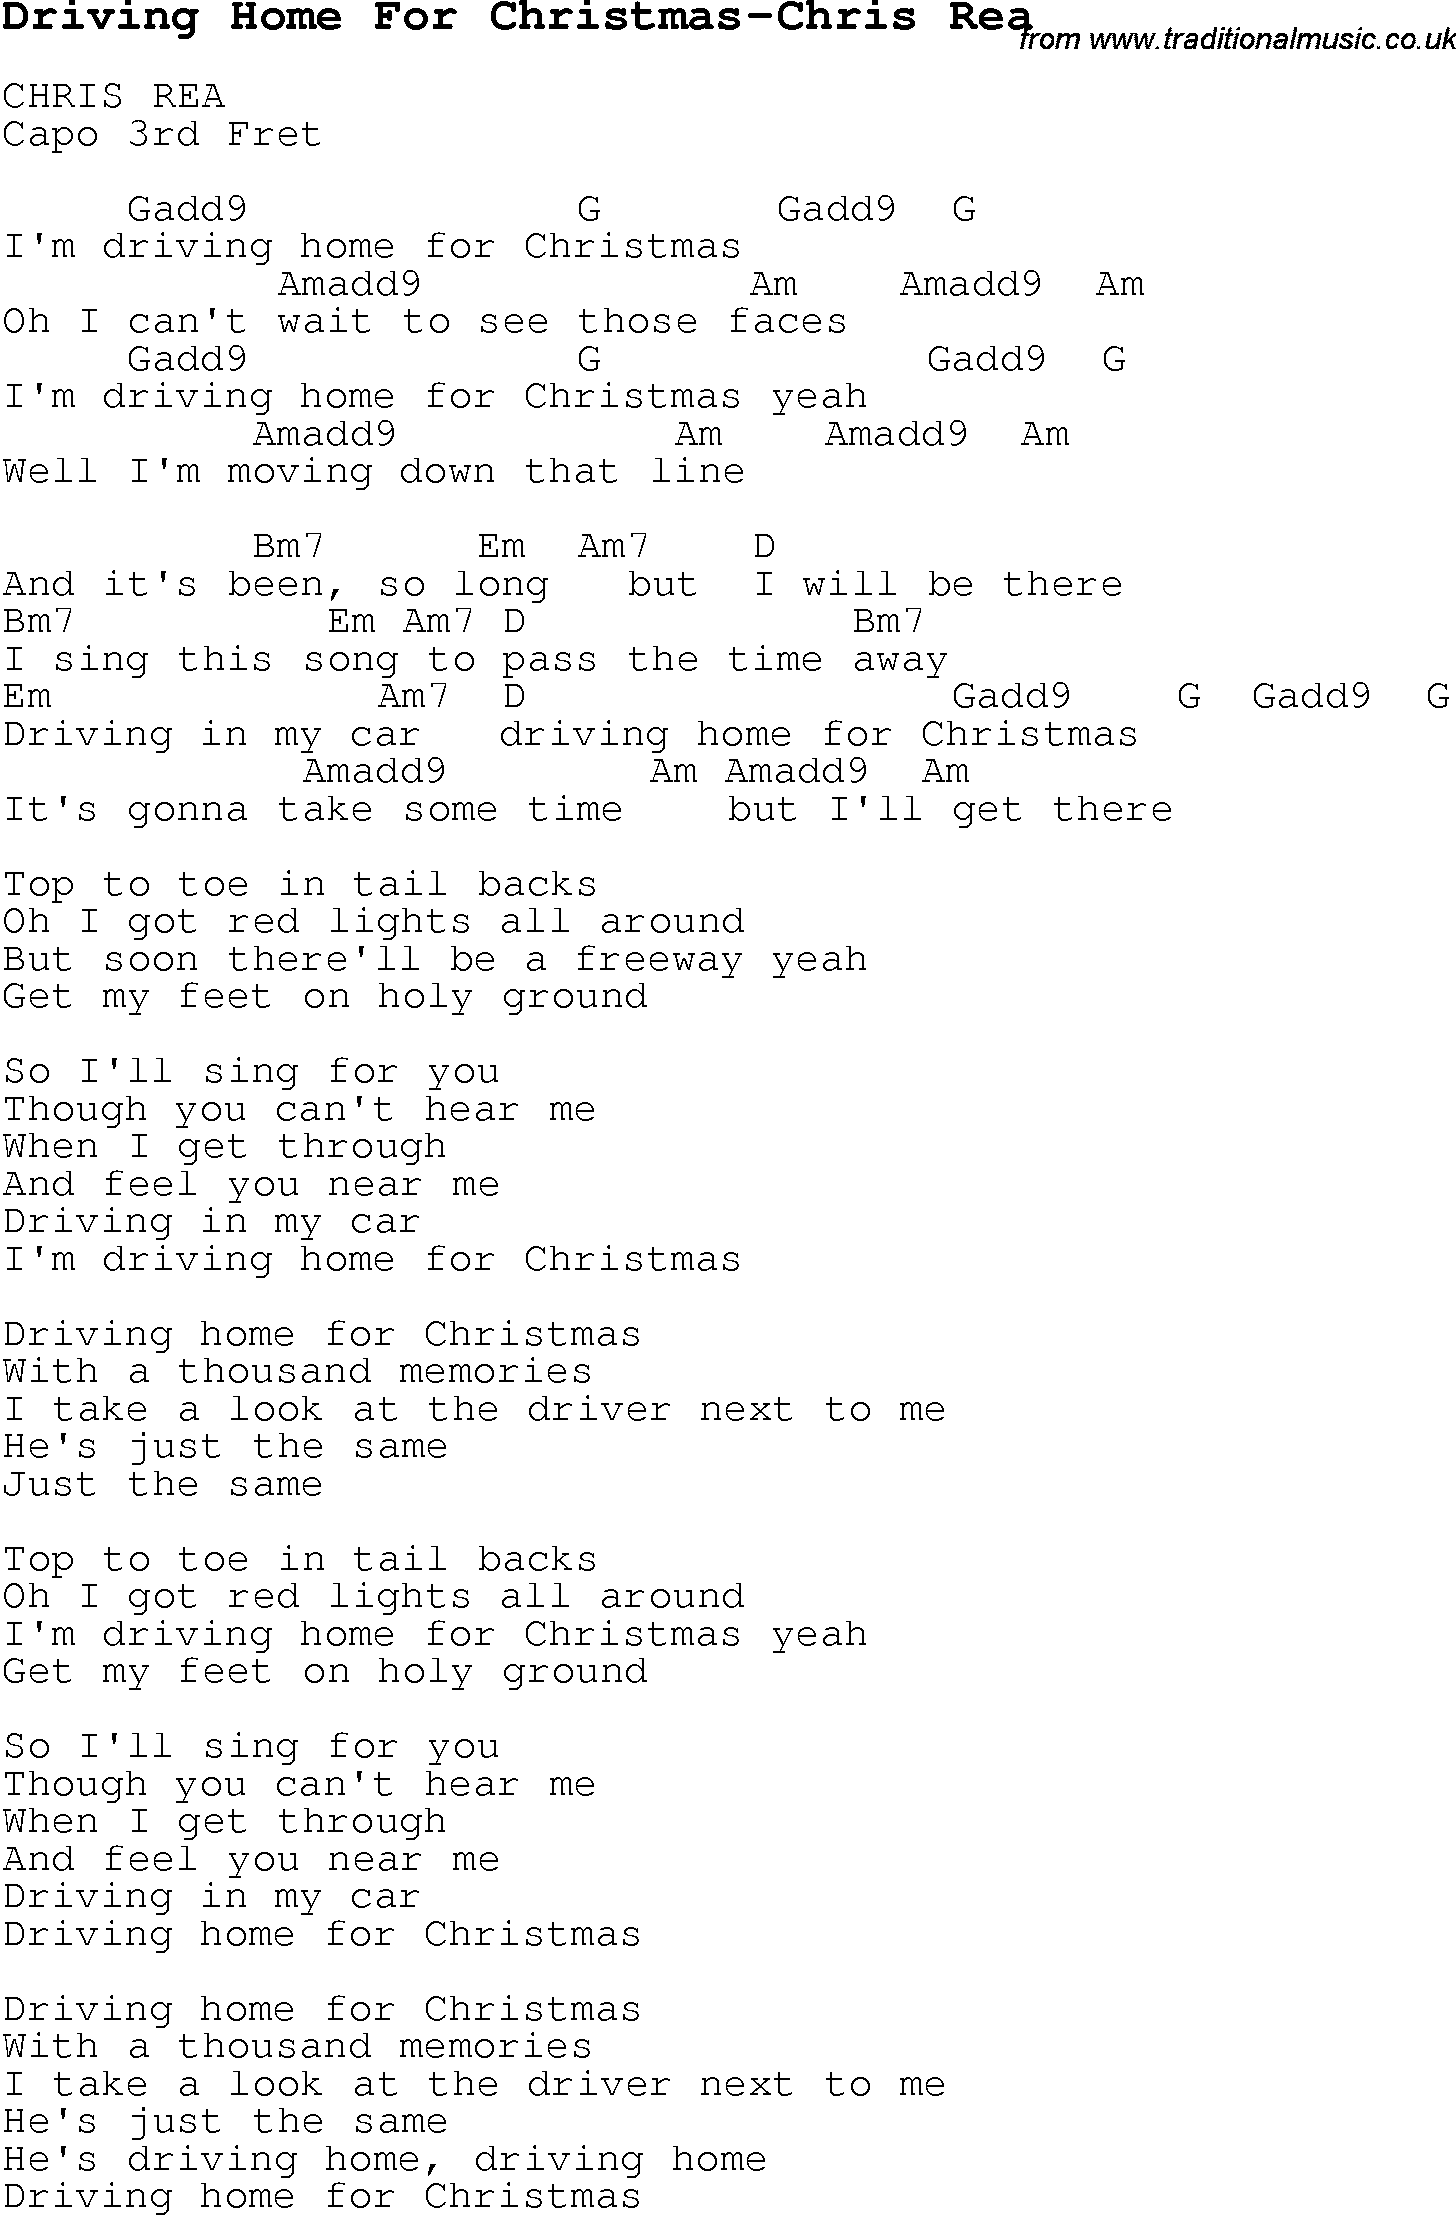 Christmas Carol/Song lyrics with chords for Driving Home For ...